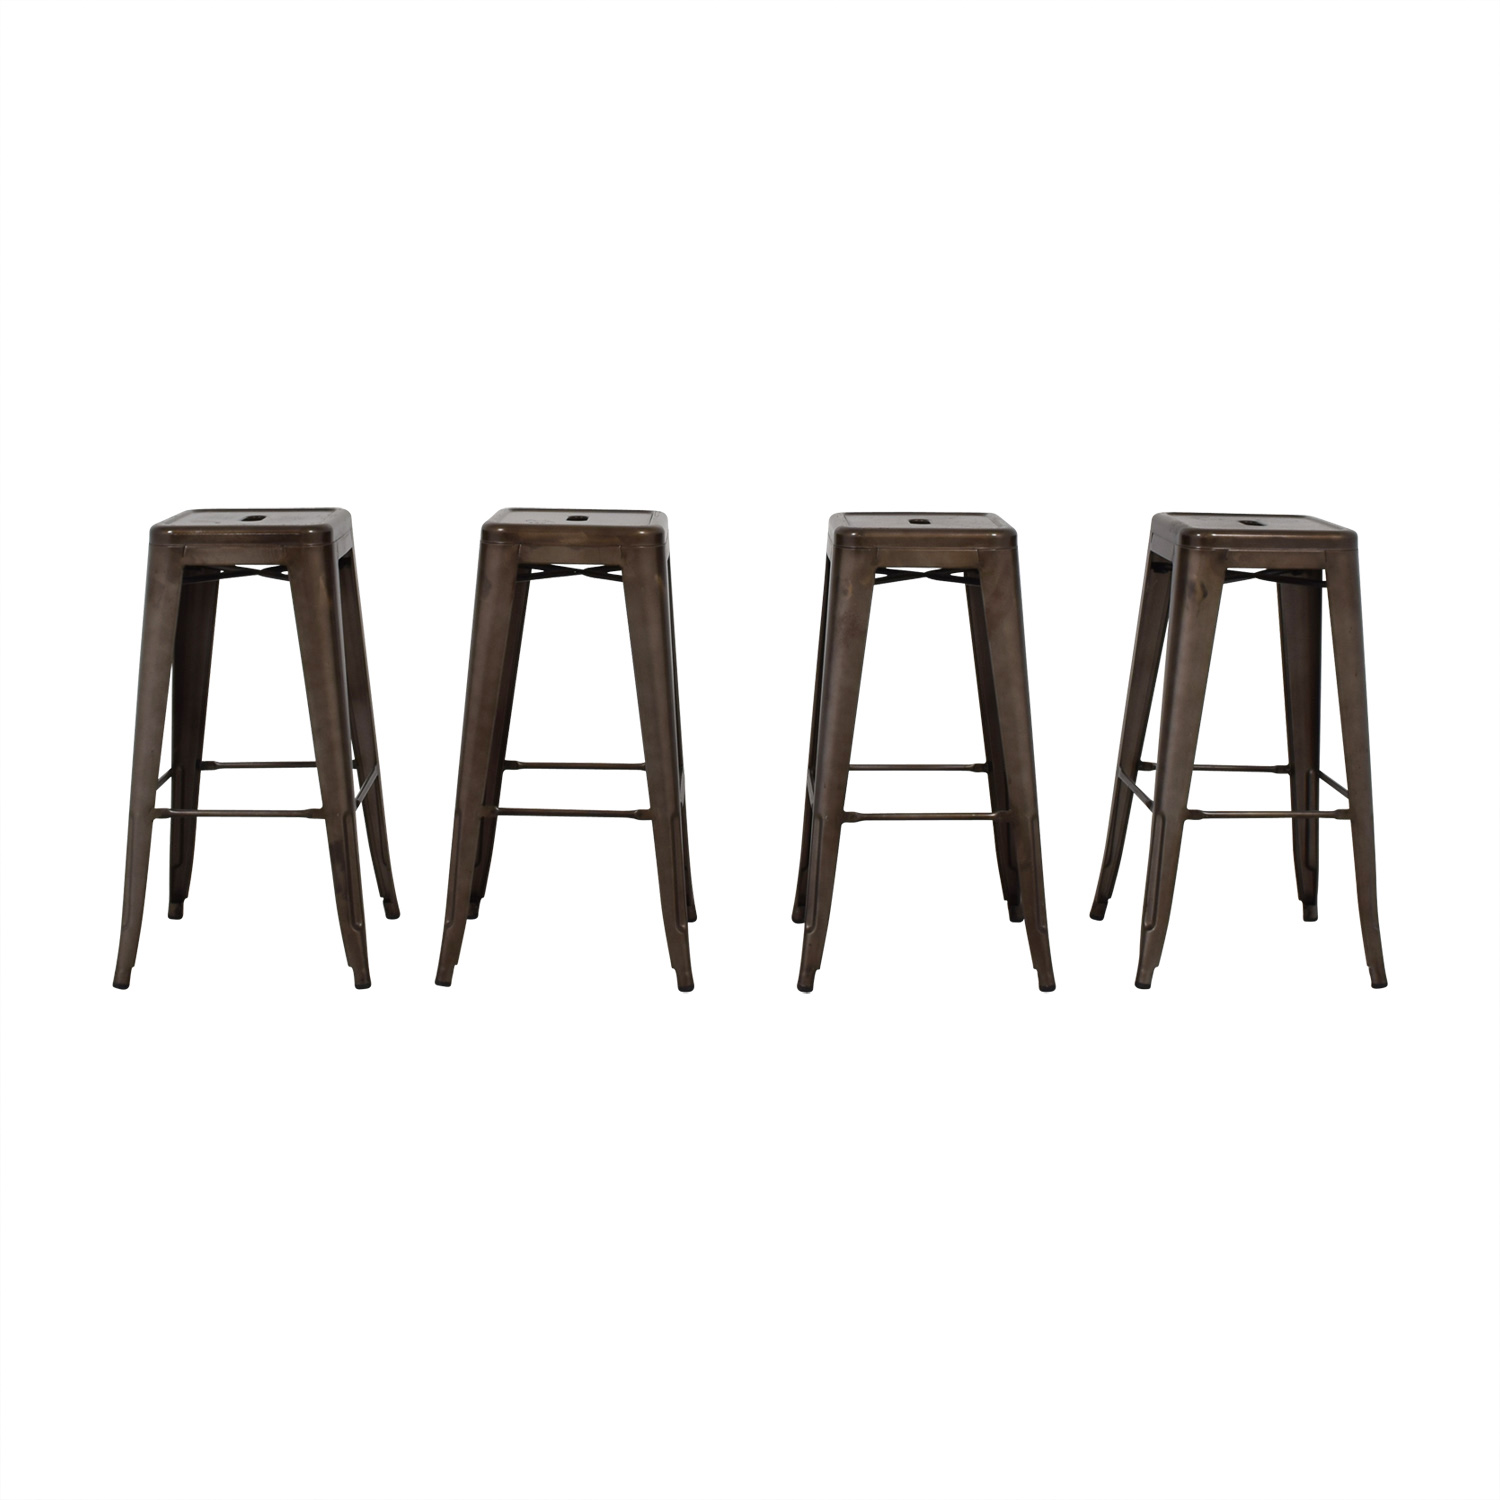 Tabouret Style Industrial Rustic Distressed Metal Bar Stools / Stools ...